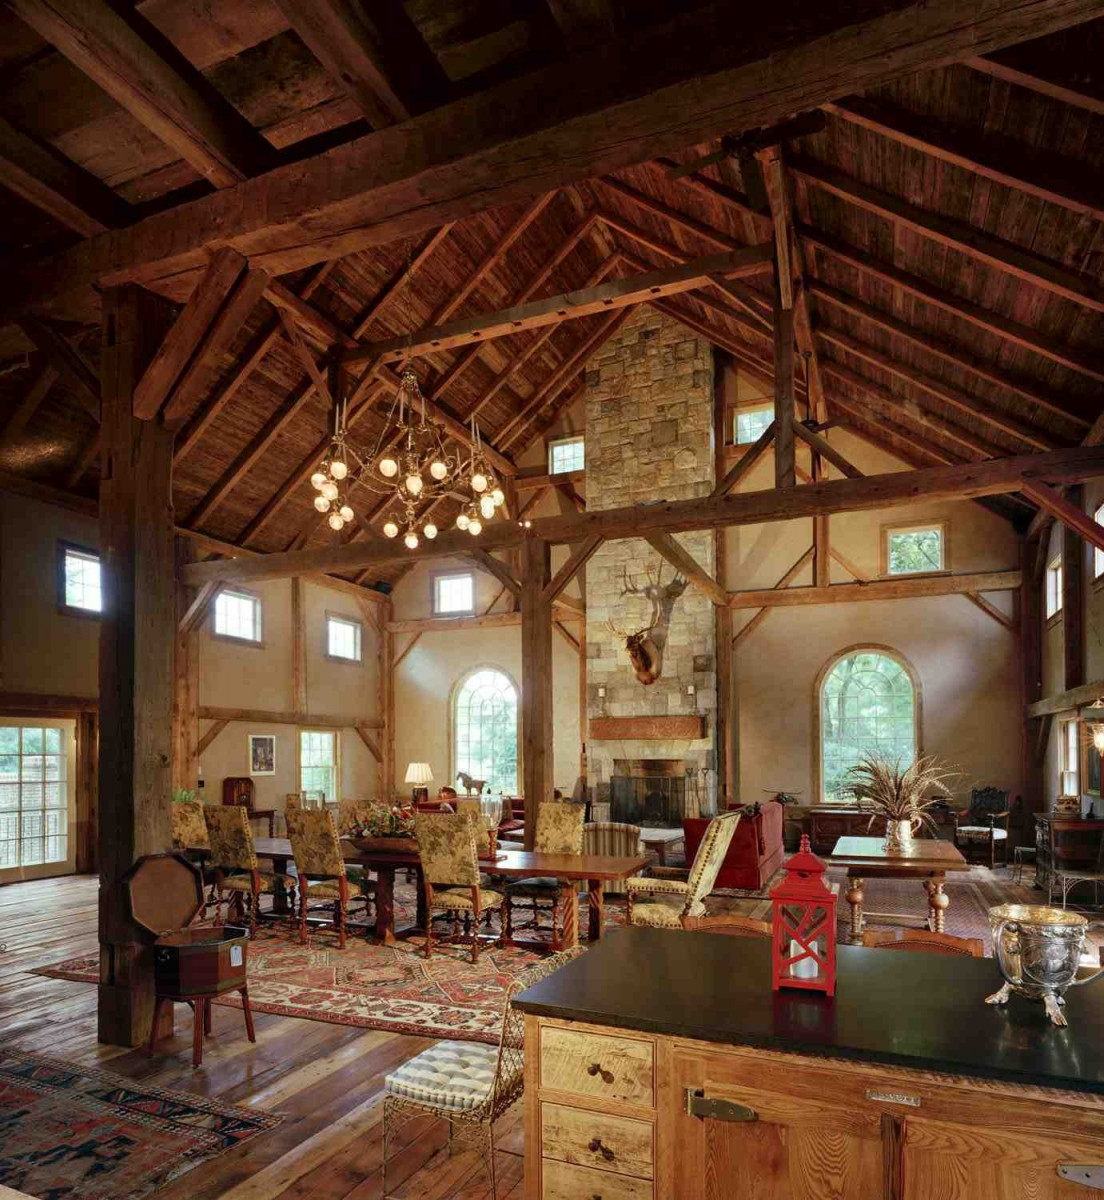 The converted barn as home Converted barn homes for sale in texas